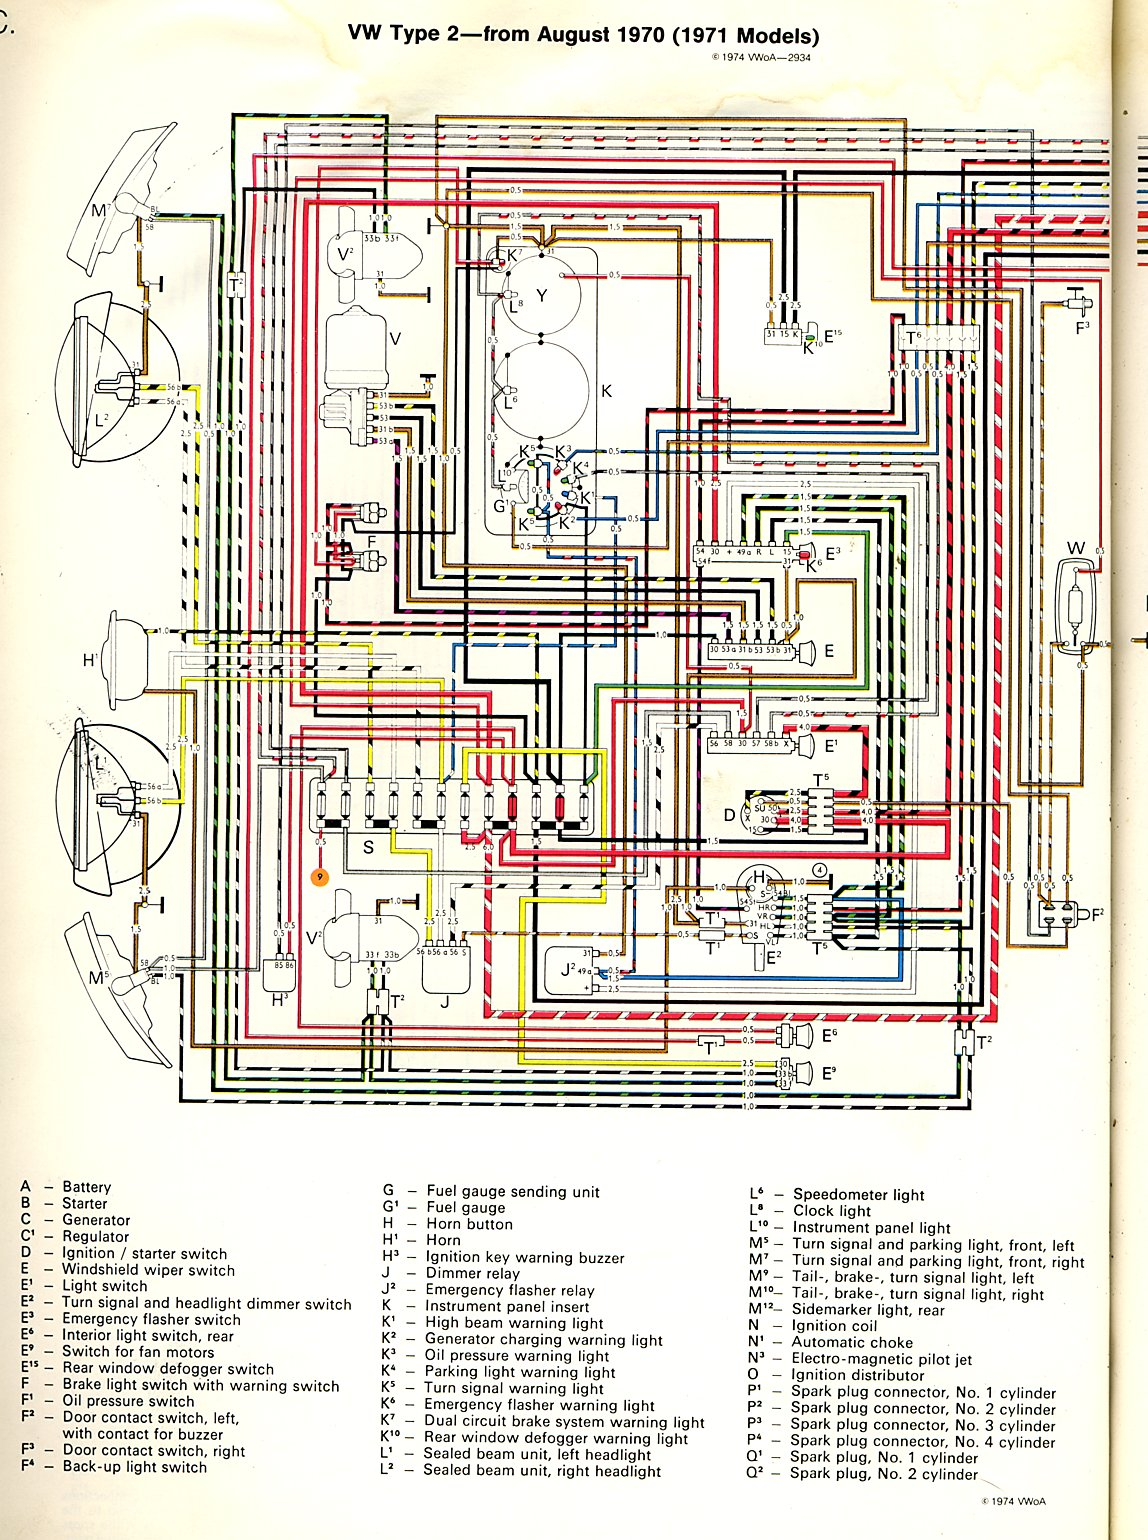 vw bus engine diagram wiring schematic 1971 bus wiring diagram | thegoldenbug.com #7